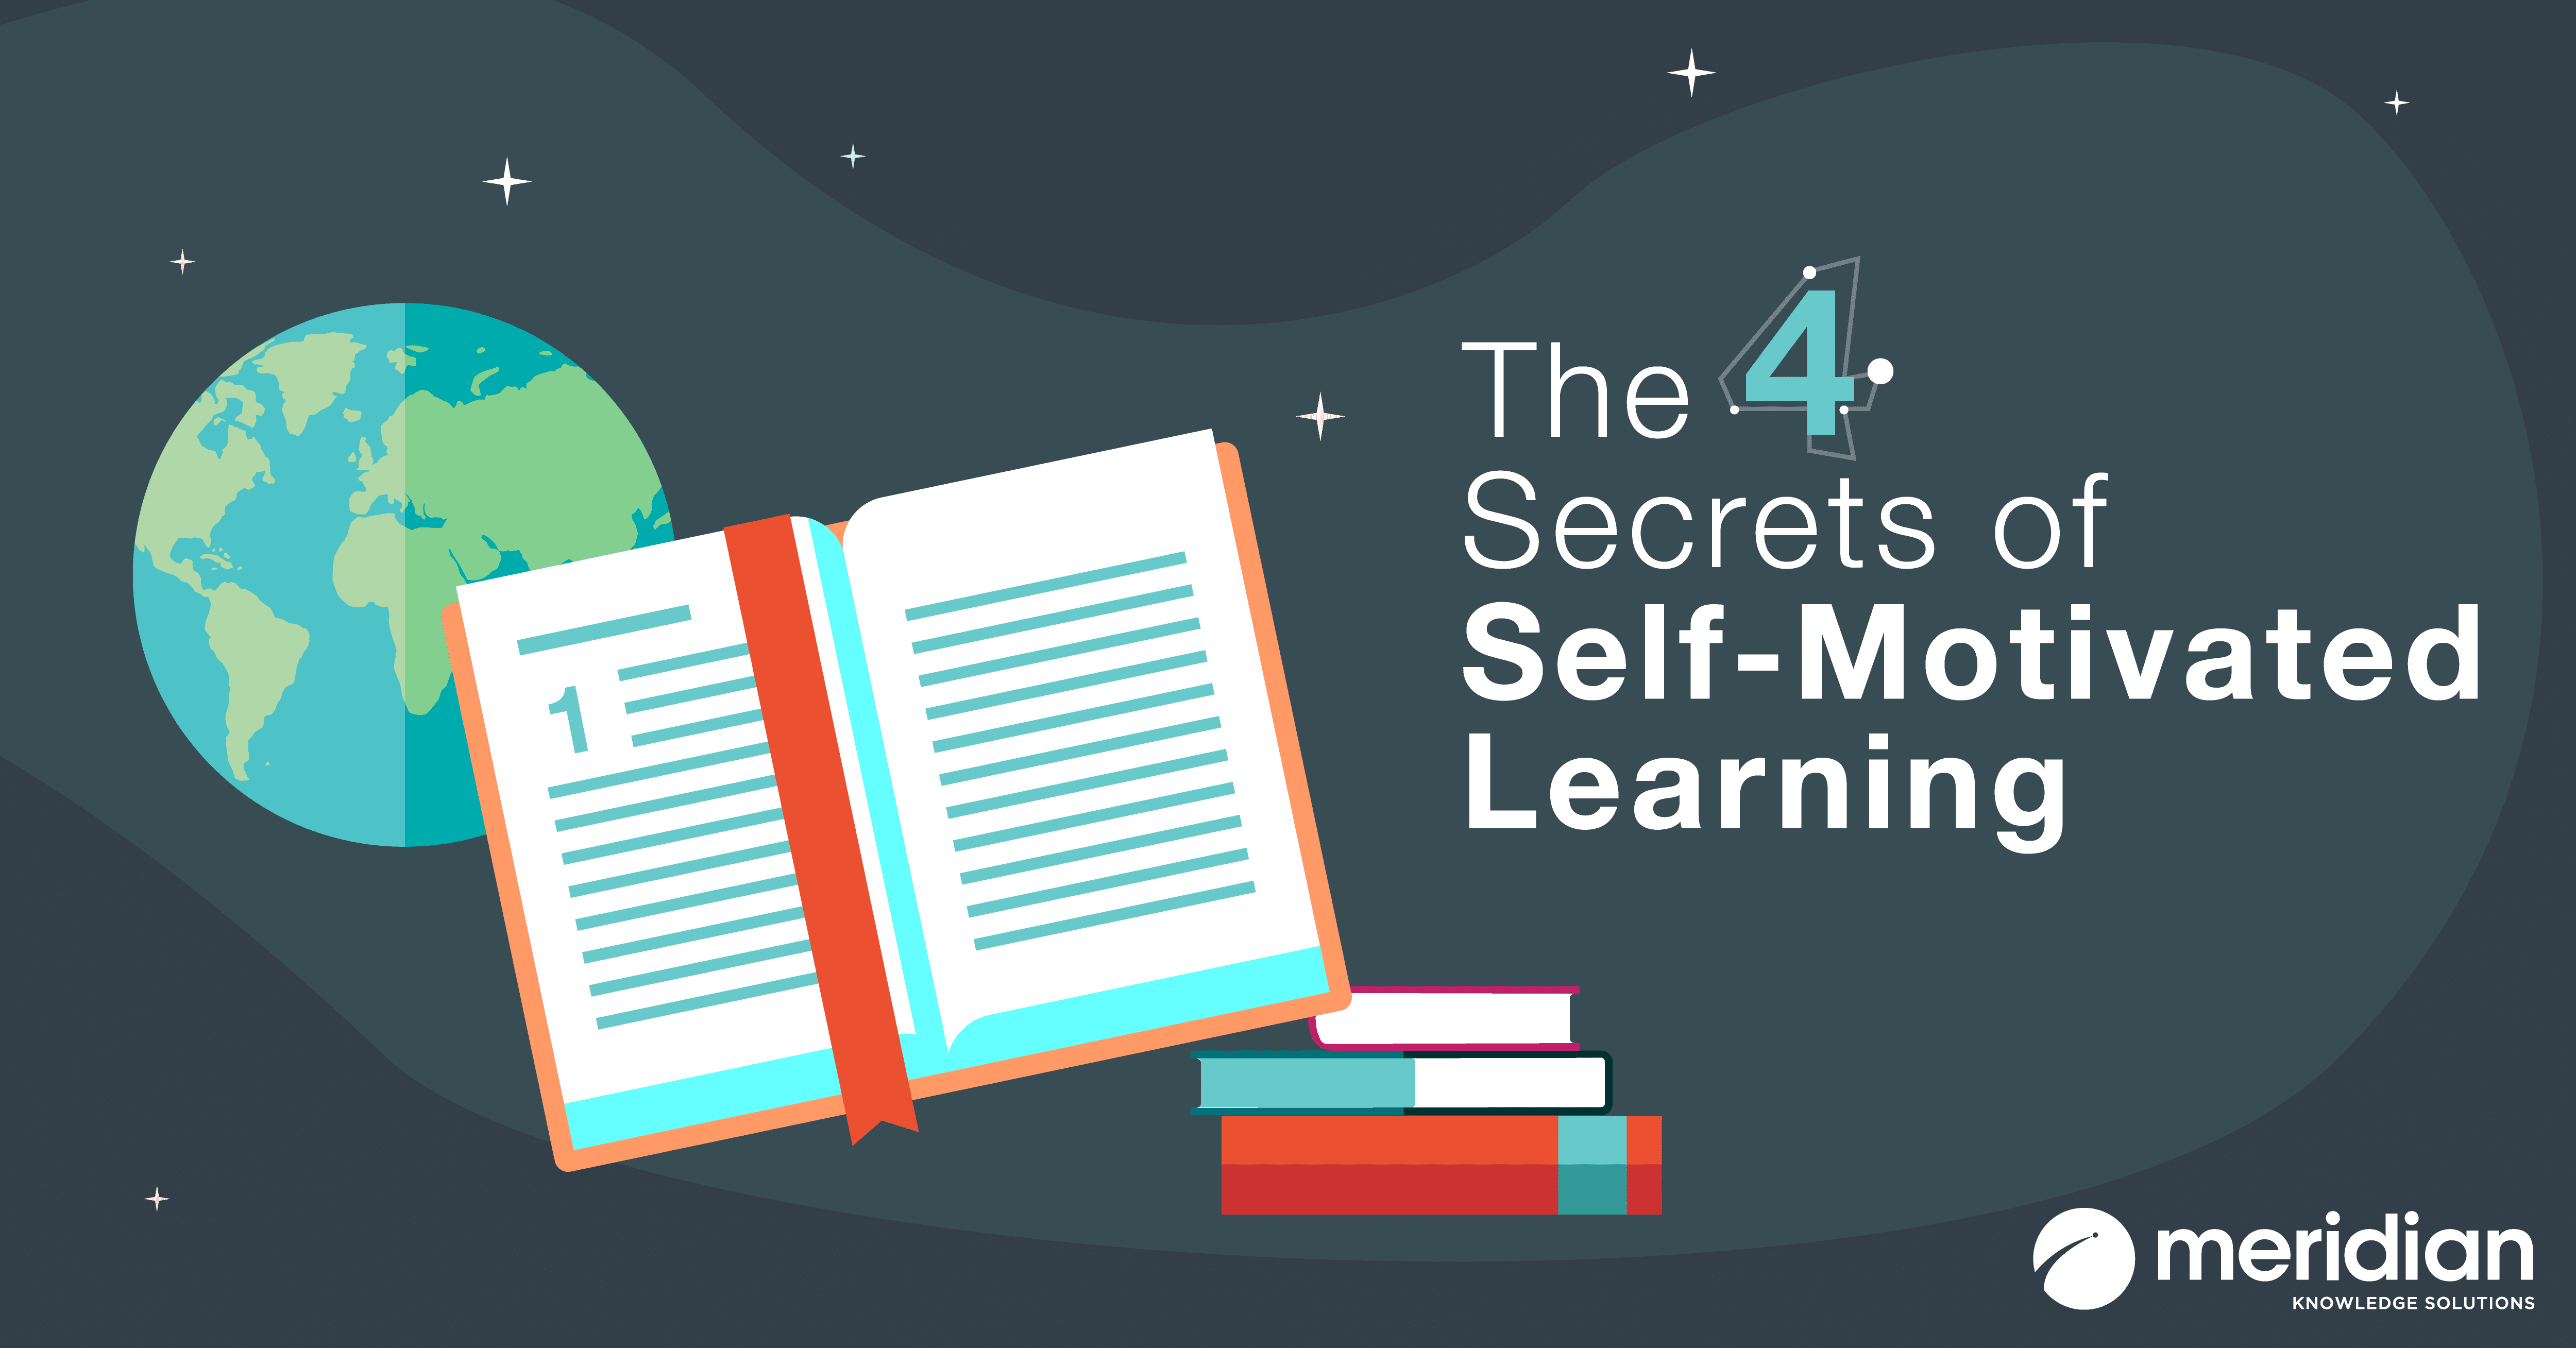 The 4 Secrets of Self-Motivated Learning